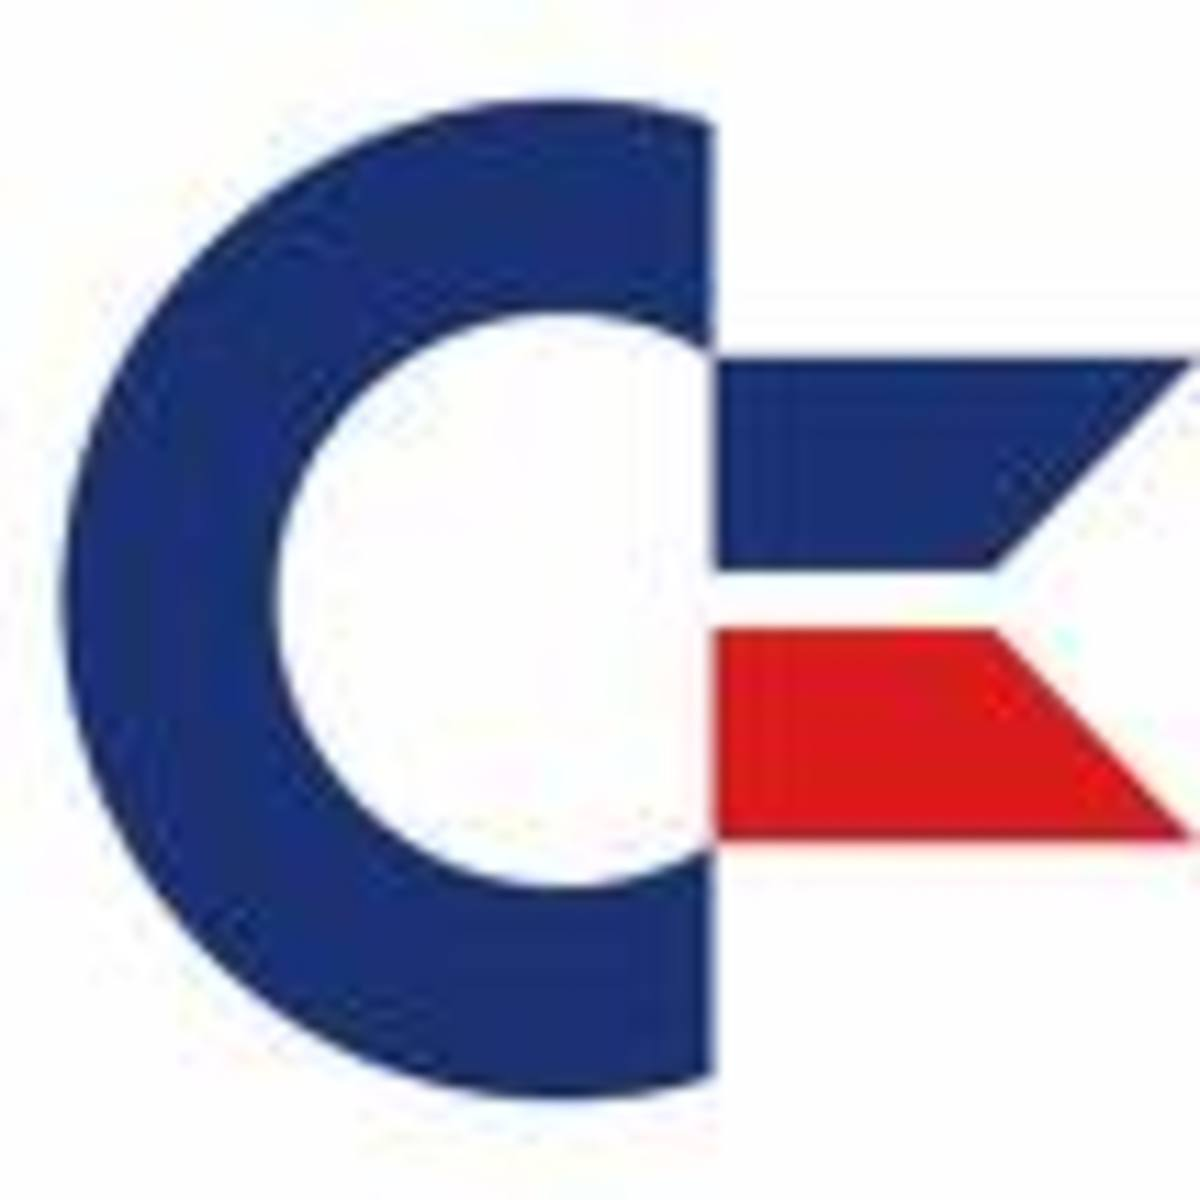 The famous Commodore logo